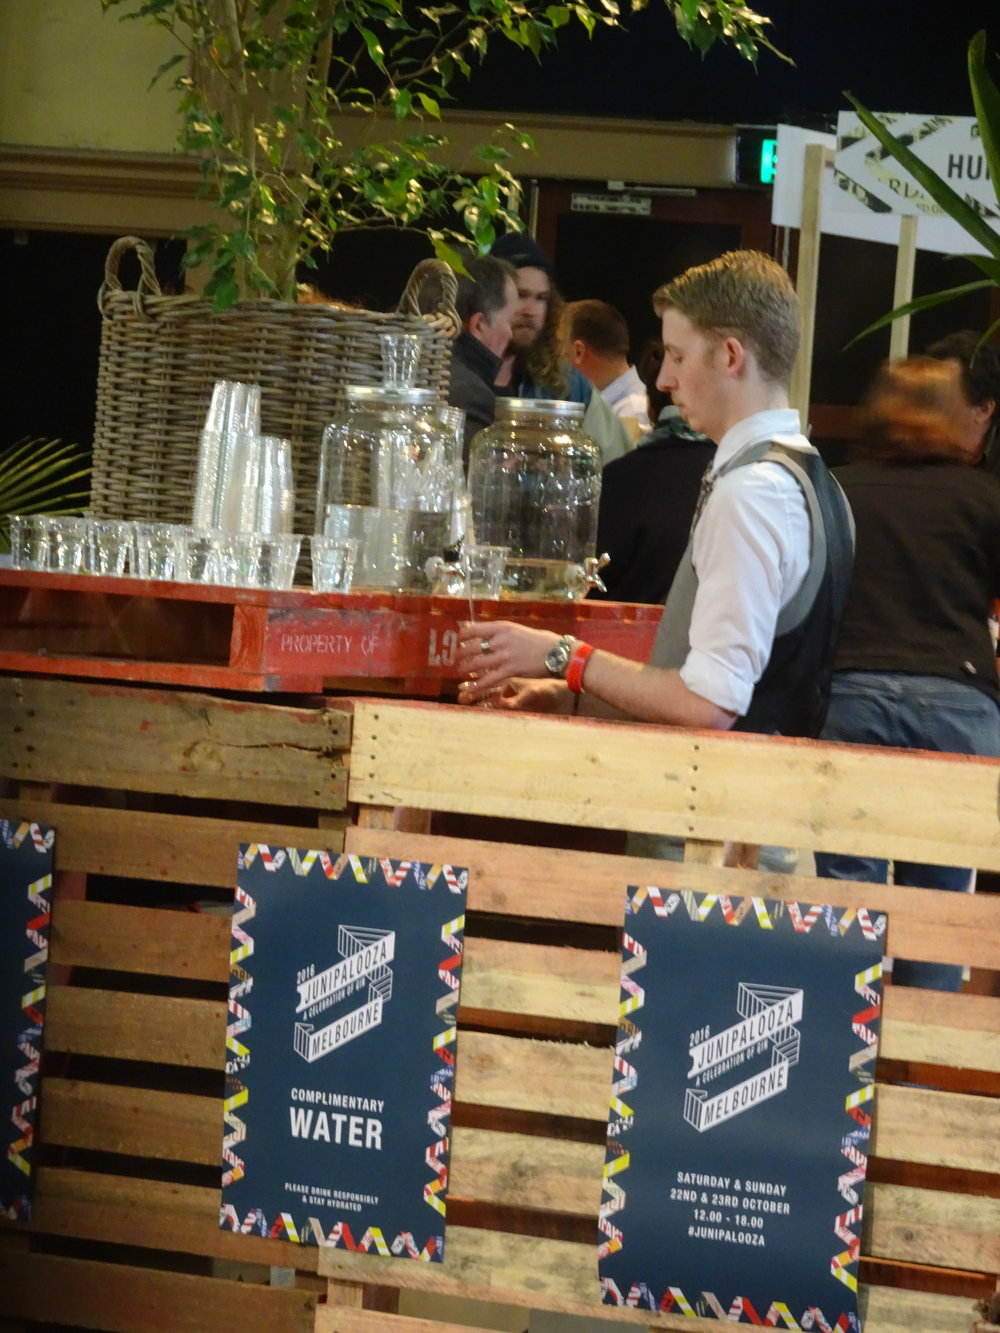 You know service is taken seriously here when bartenders from one of Melbourne's top gin bars are drafted in to head up hydration stations and hand out cups of water.